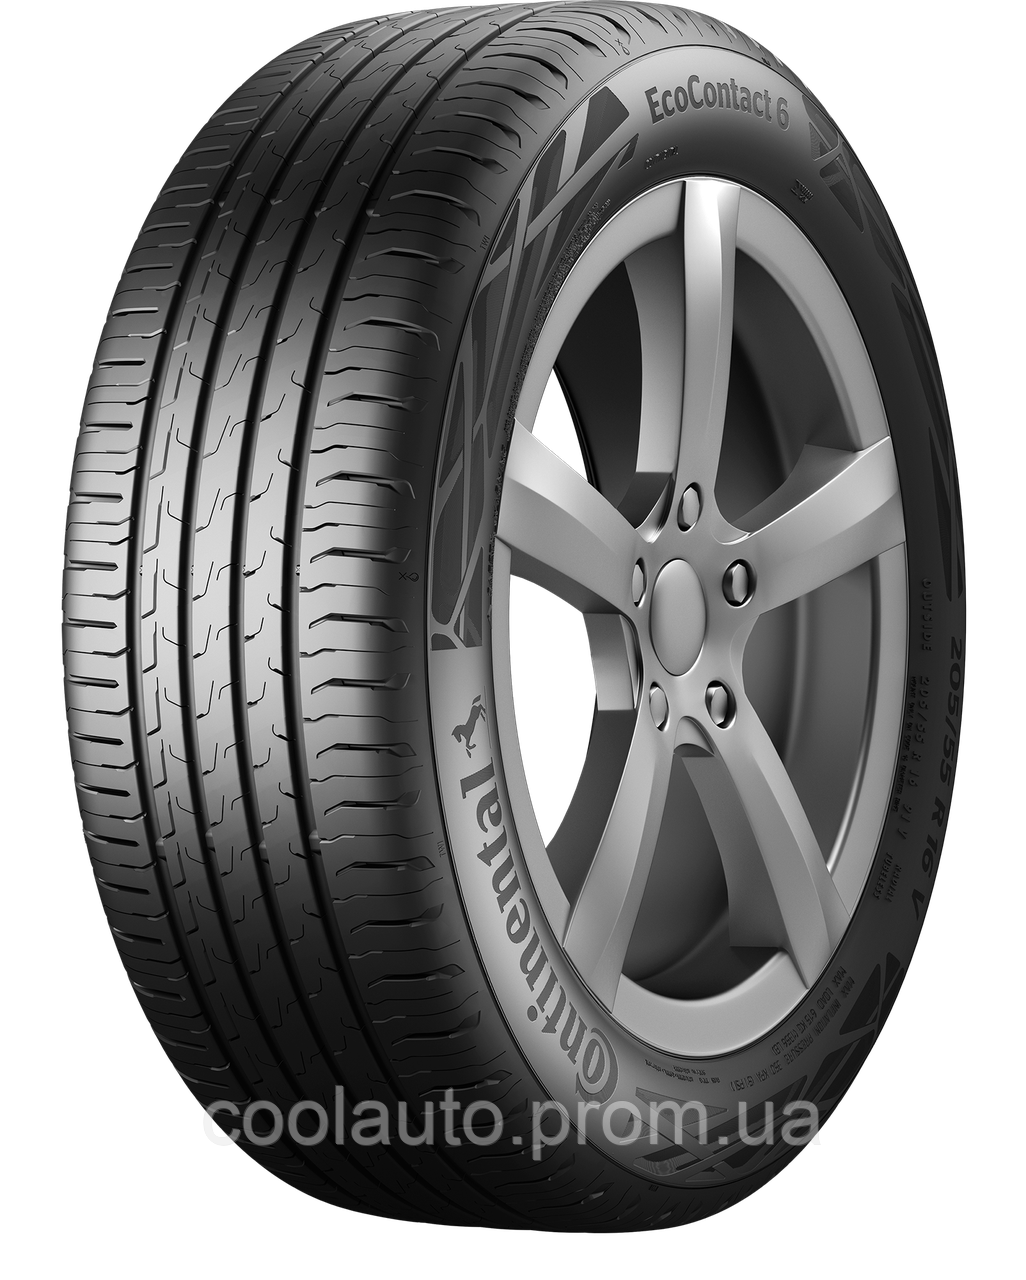 Шины Continental EcoContact 6 155/80 R13 79T